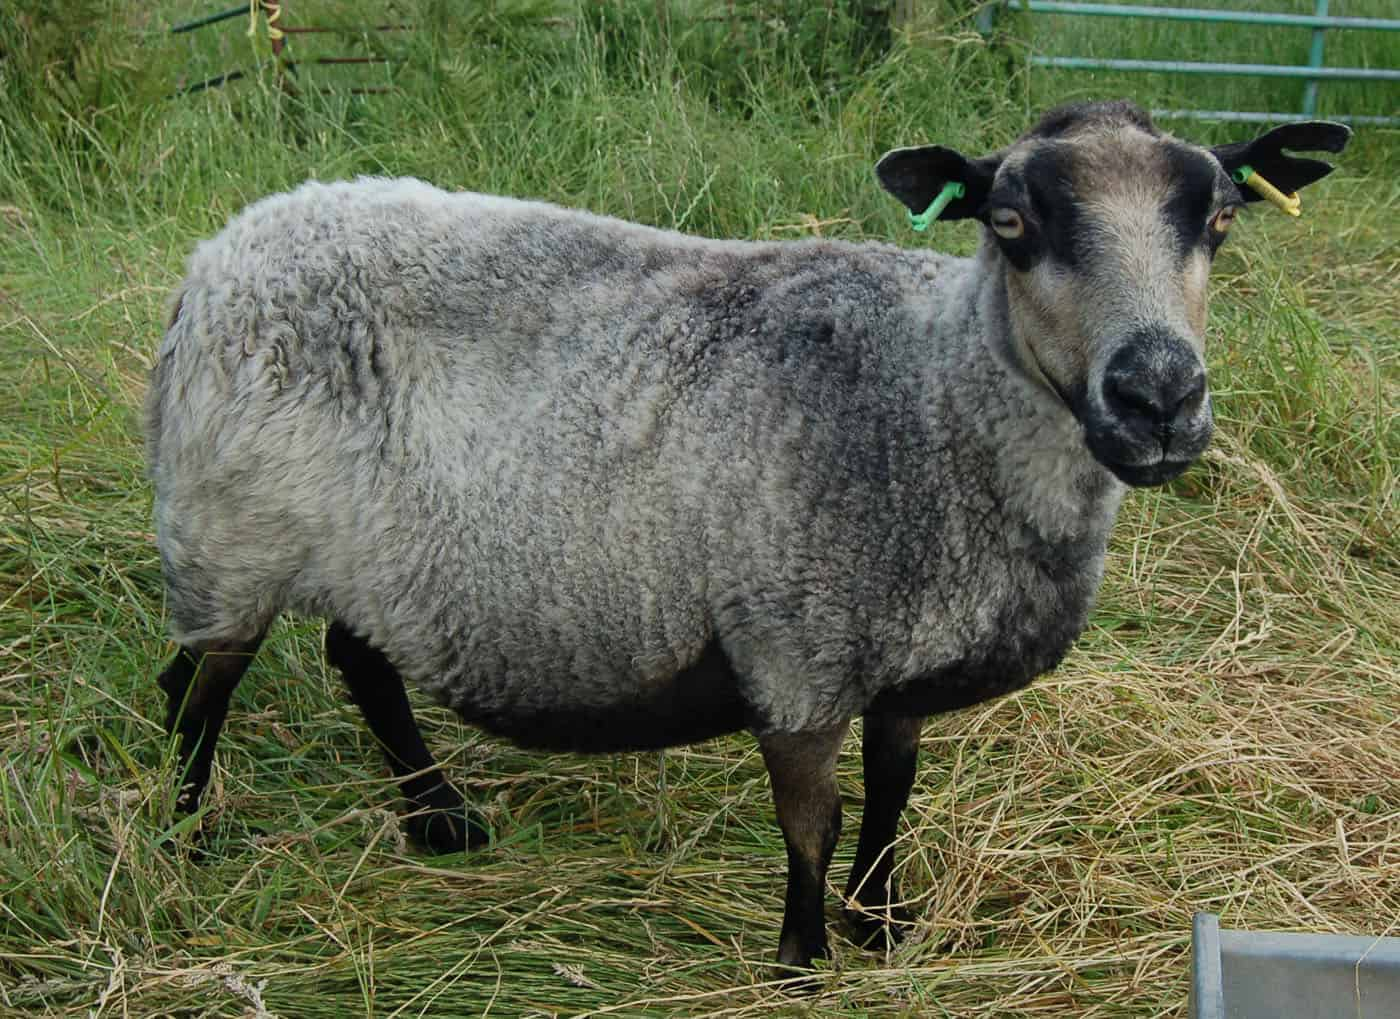 Sandy badgerface shetland jacob sheep grey wool